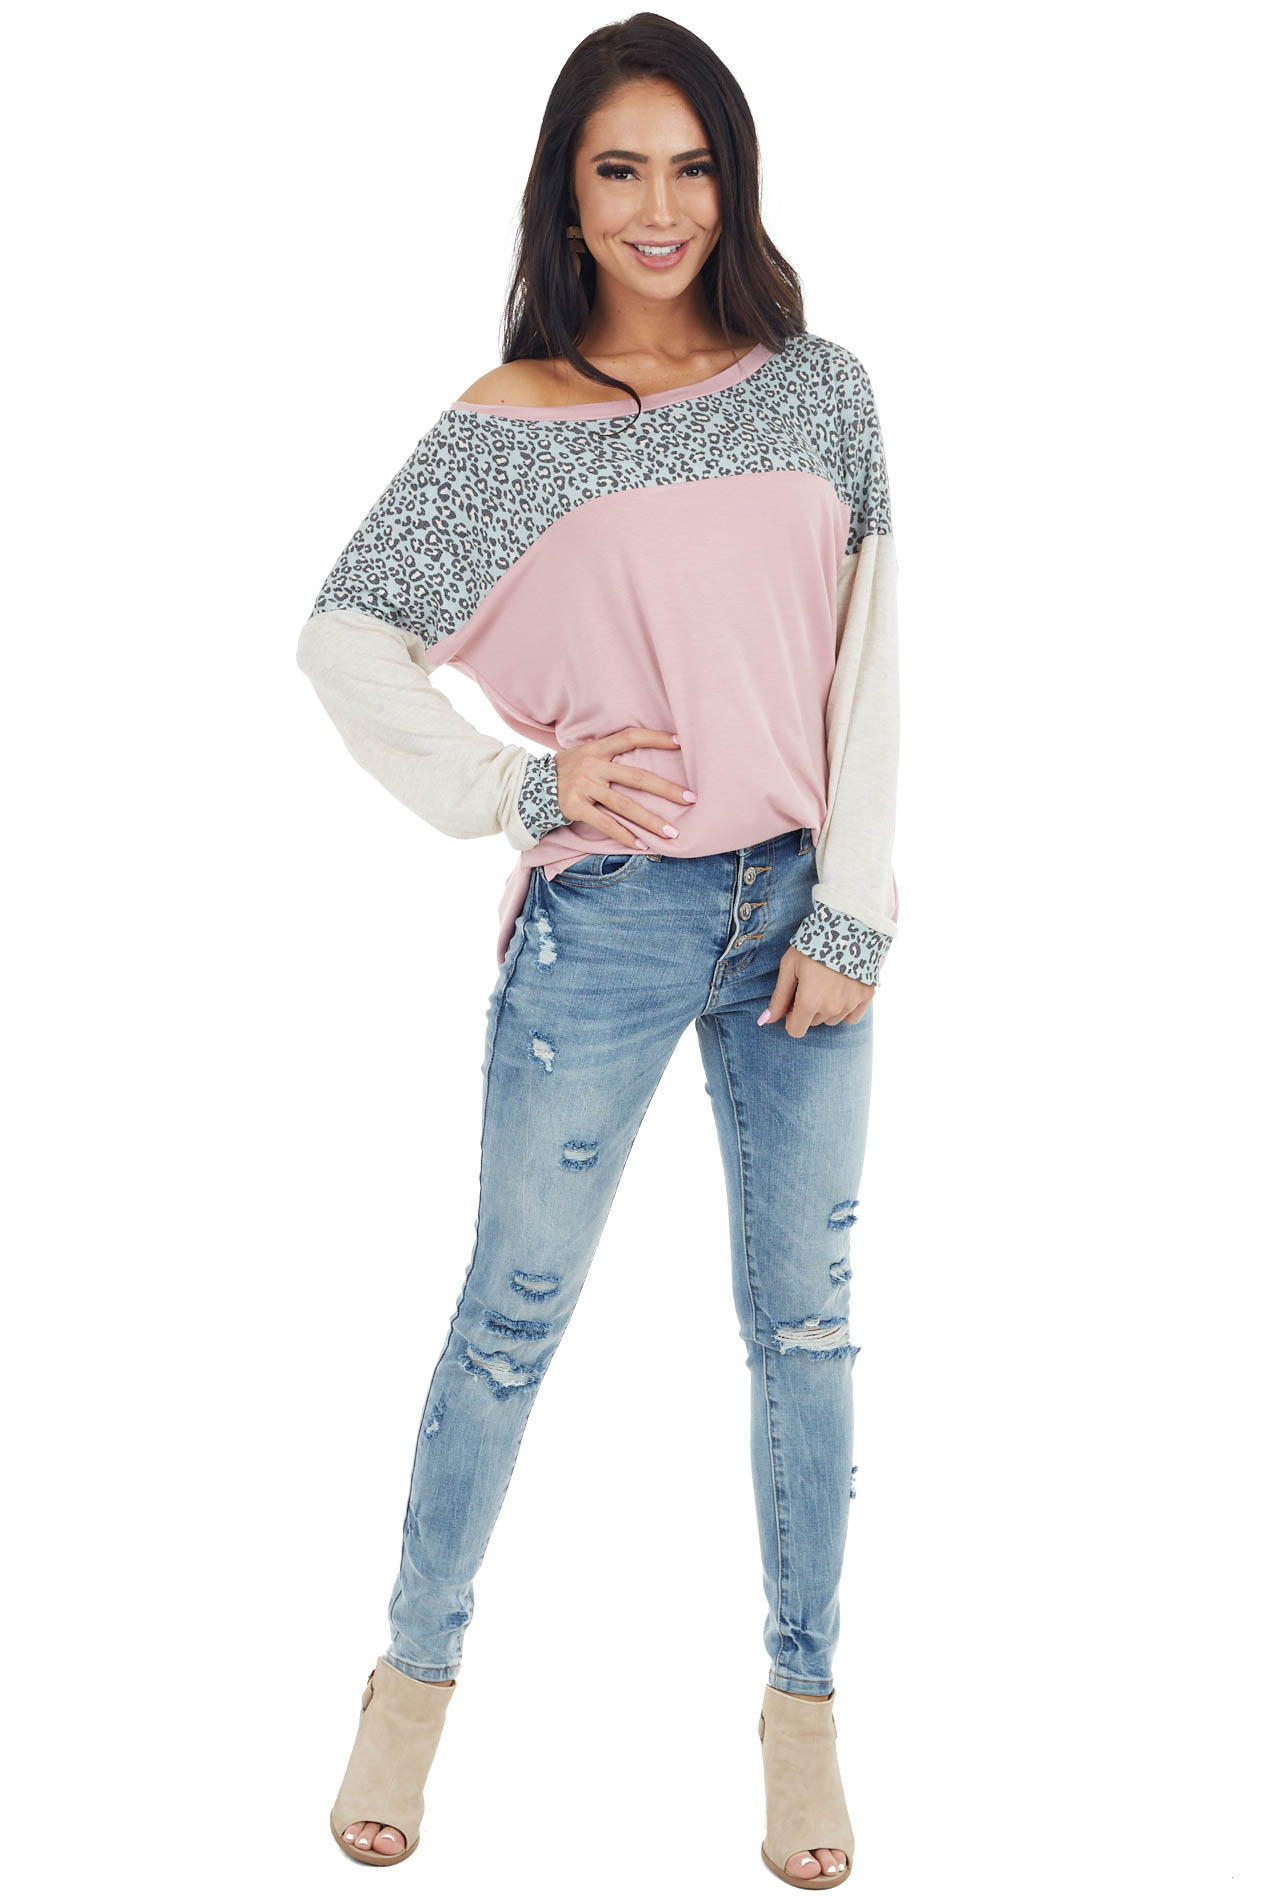 Dusty Blush and Leopard Print Long Dolman Sleeve Knit Top